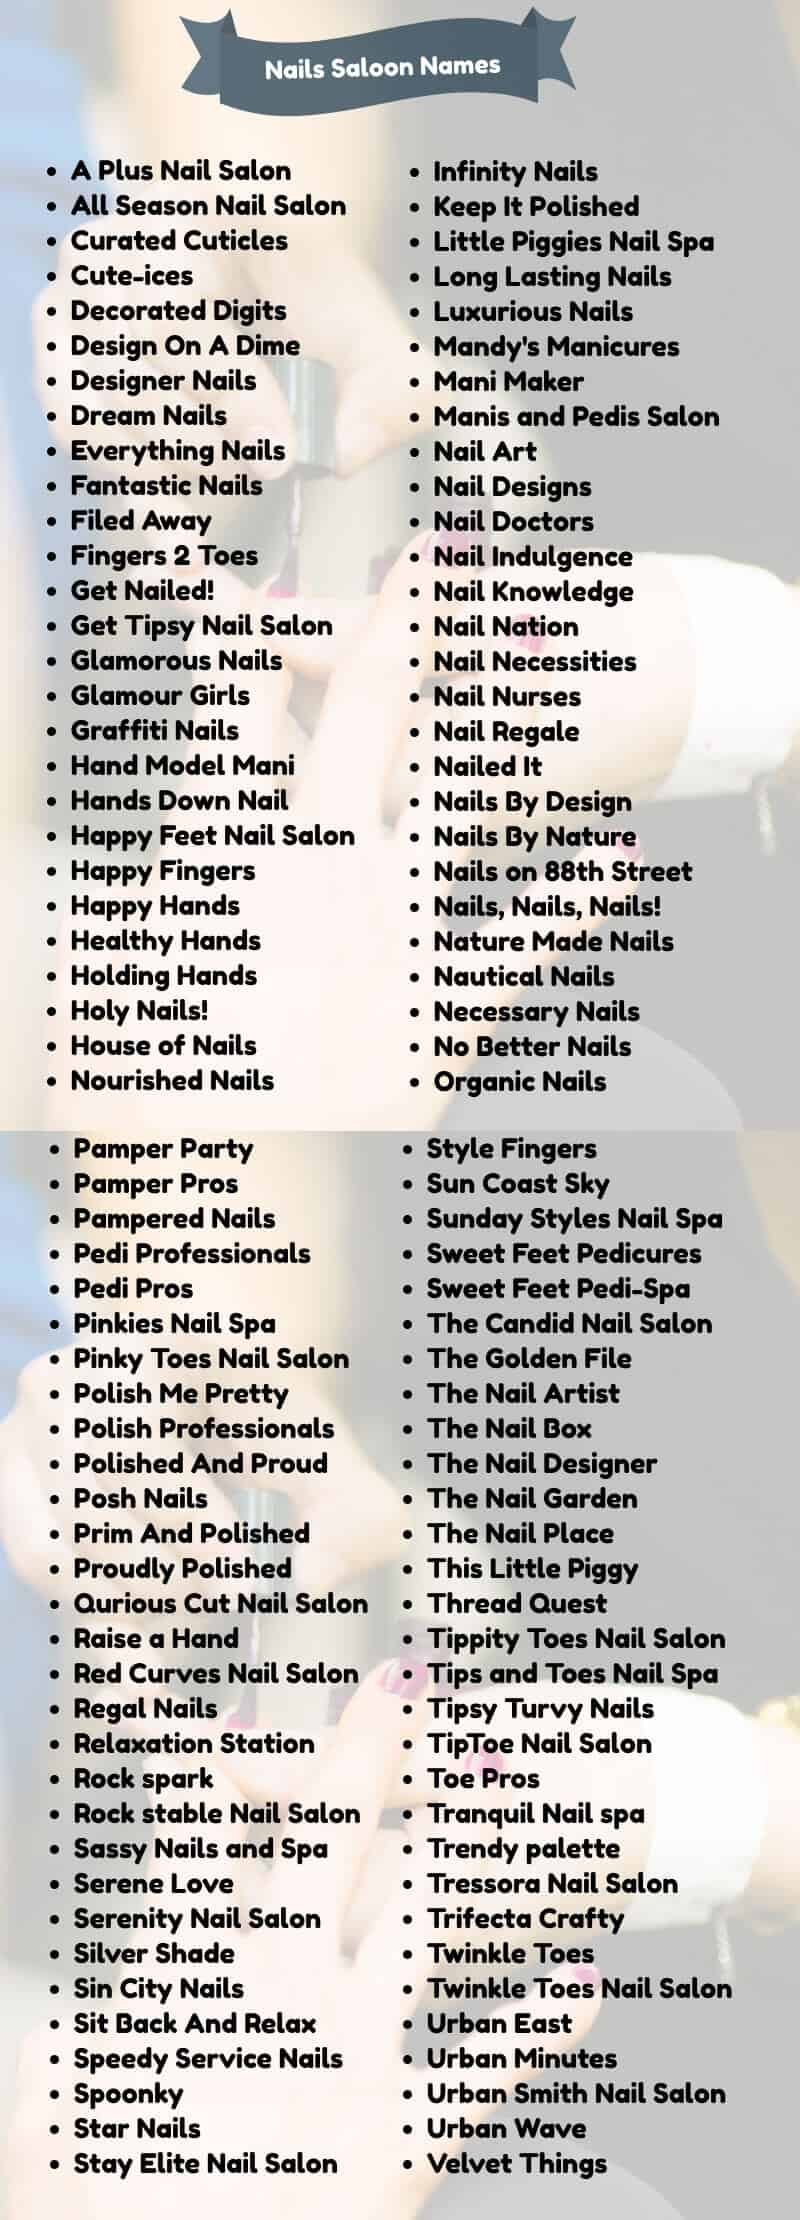 400 Classy Nail Salon Names For Your Business Namecampaign